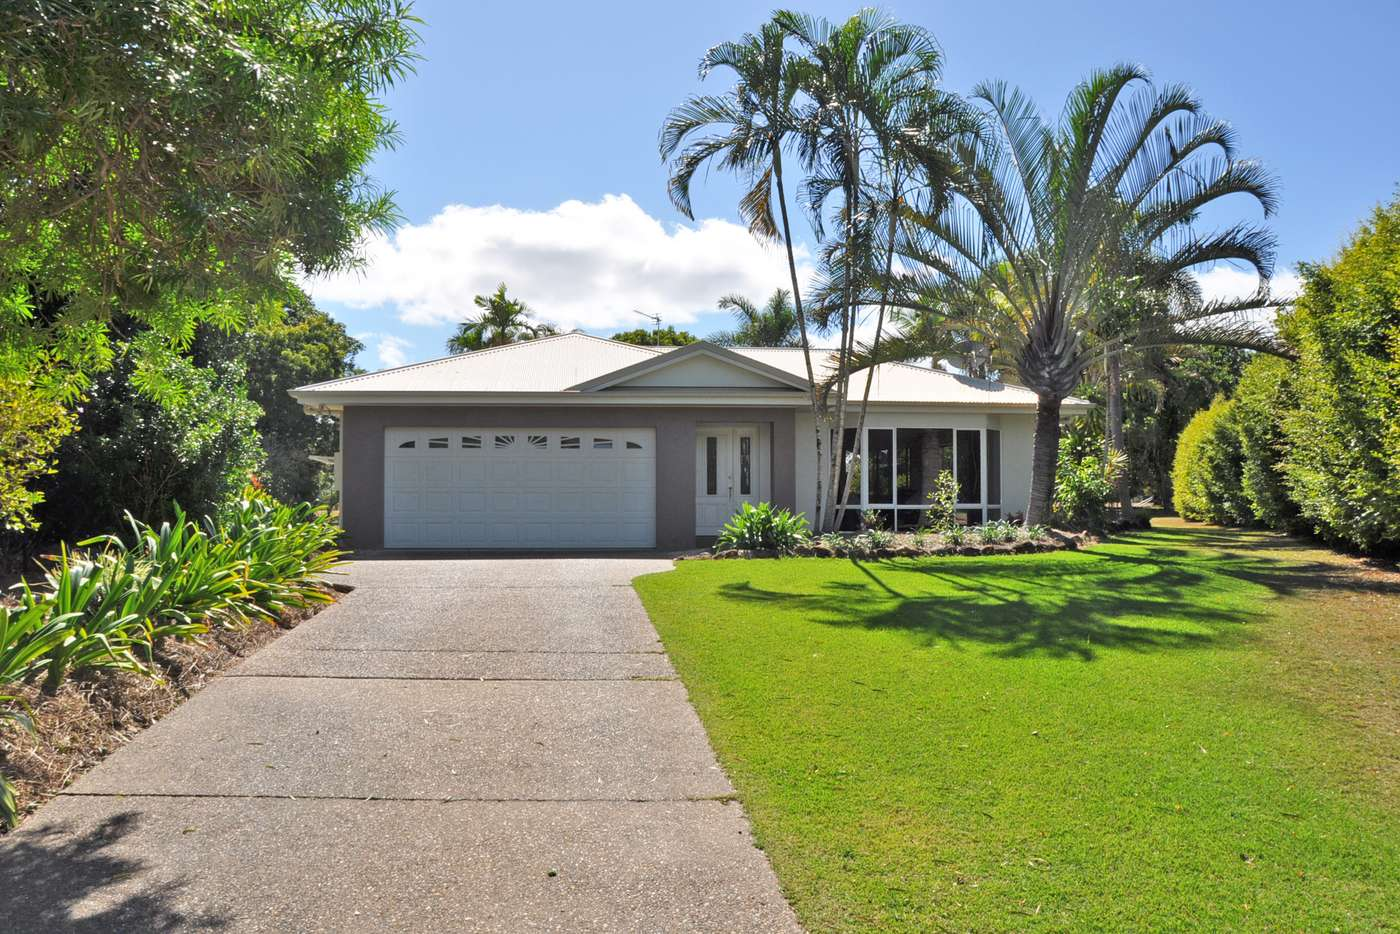 Main view of Homely house listing, 7 Debel Close, Mareeba QLD 4880